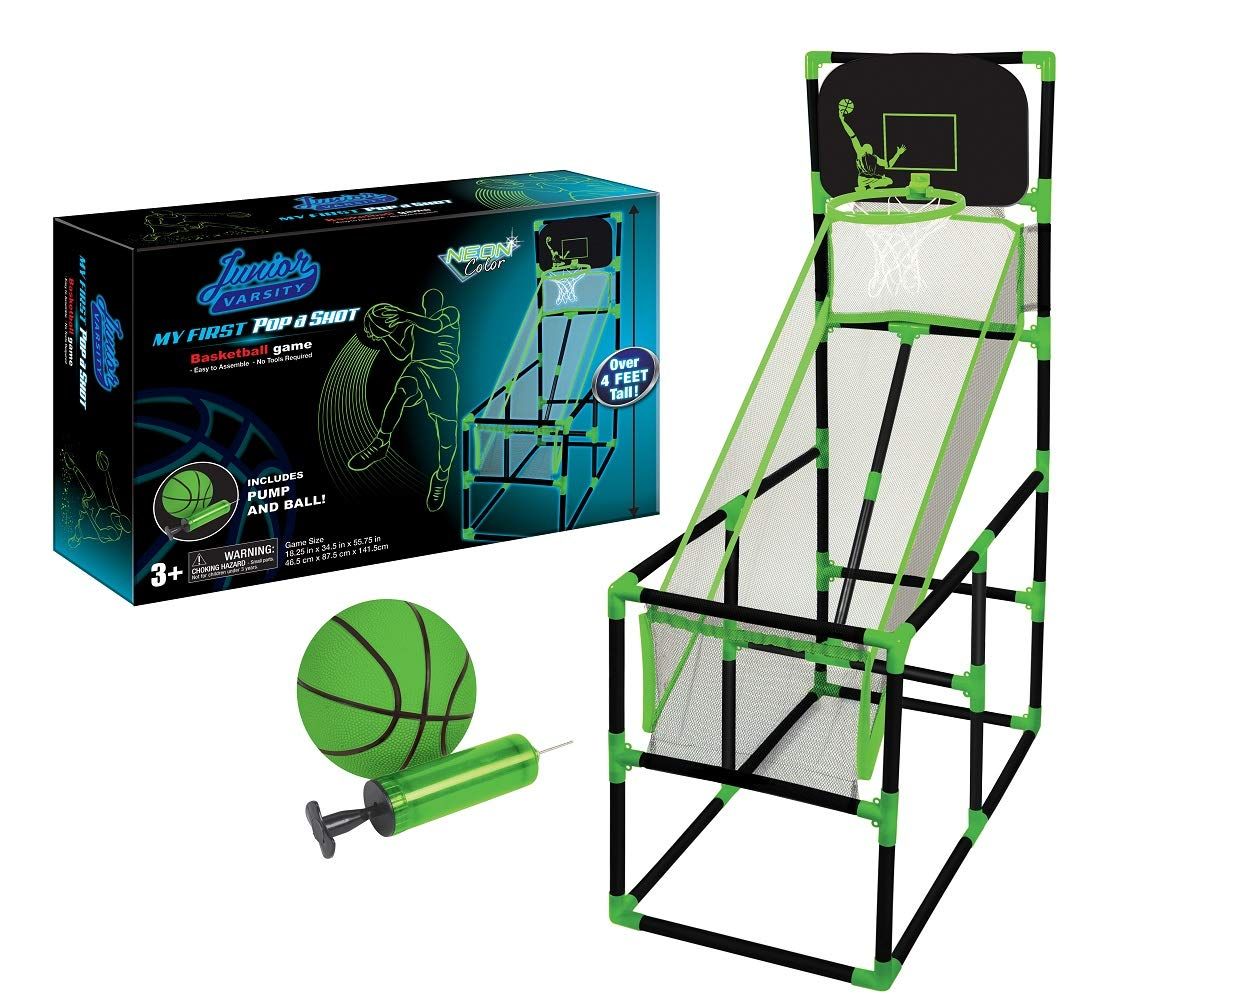 Home-X - Pop a Shot Portable/Training Basketball Game Kids Beginner Basketball Player, Easy Set Up Perfect Your Rec Room Child's Bedroom. by Home-X